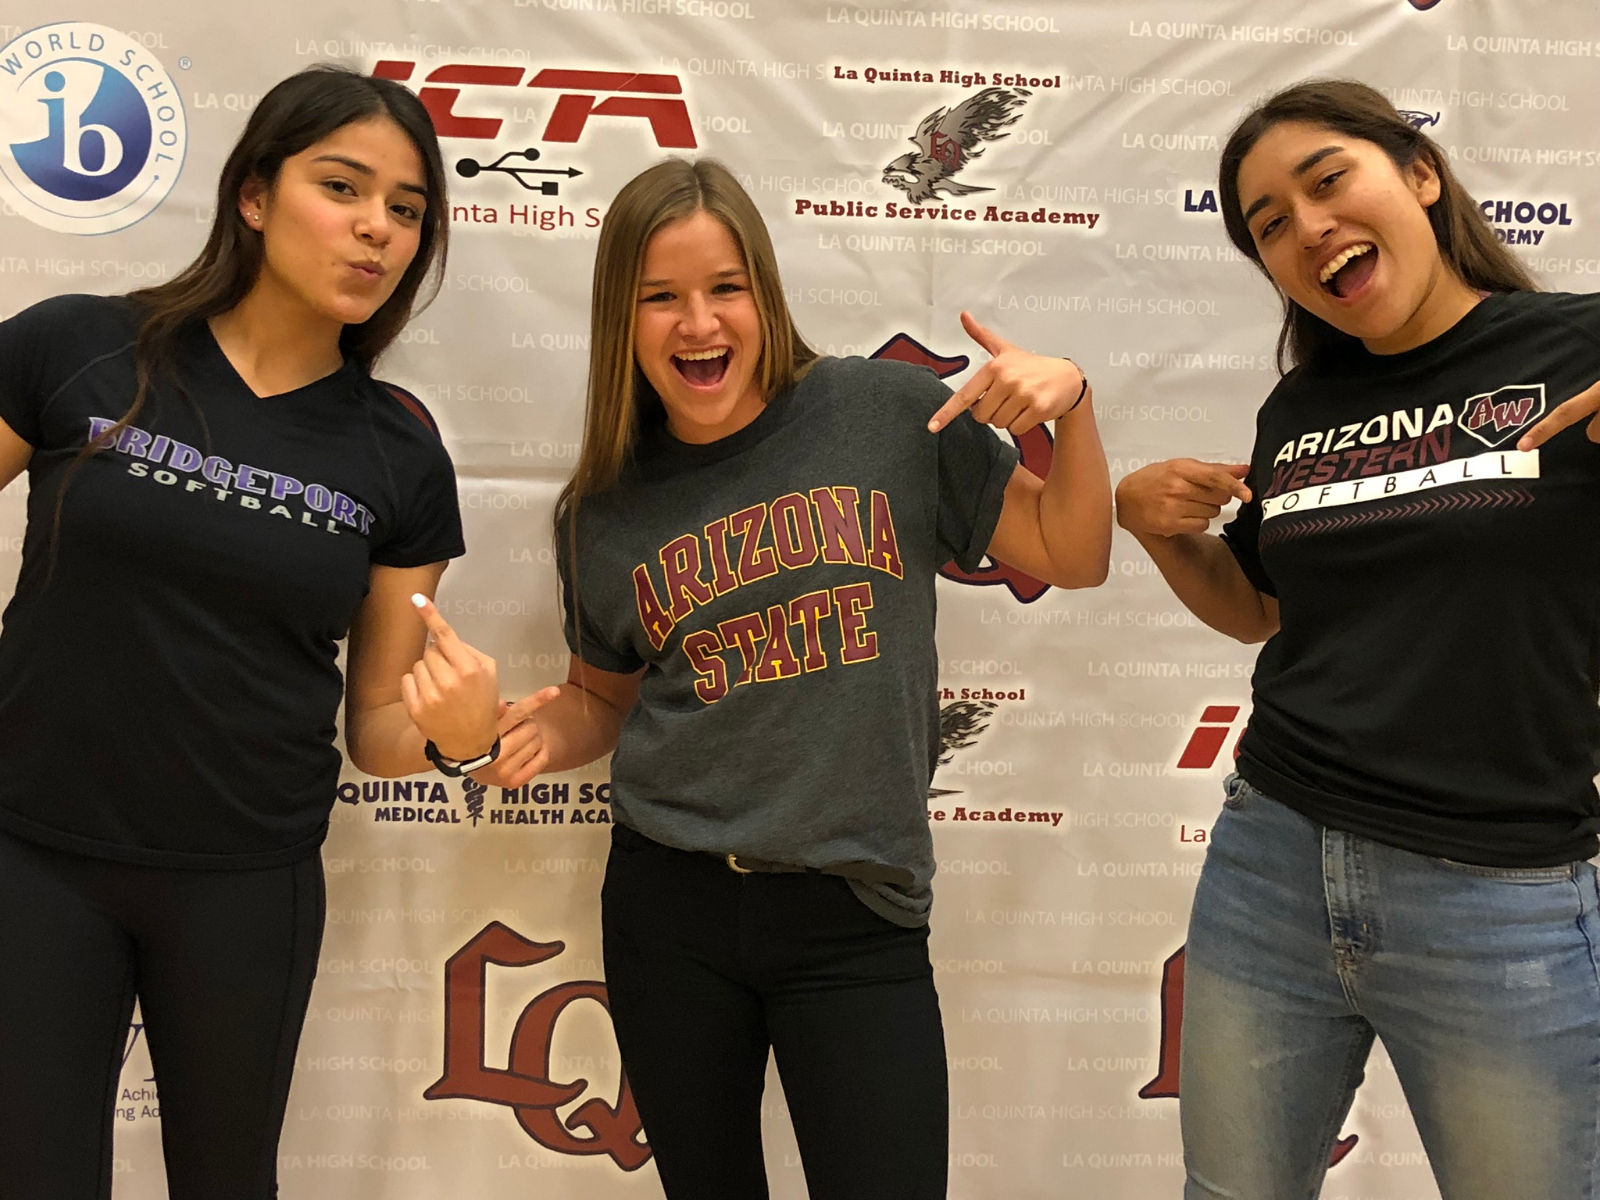 National Signing Day at LQHS!!